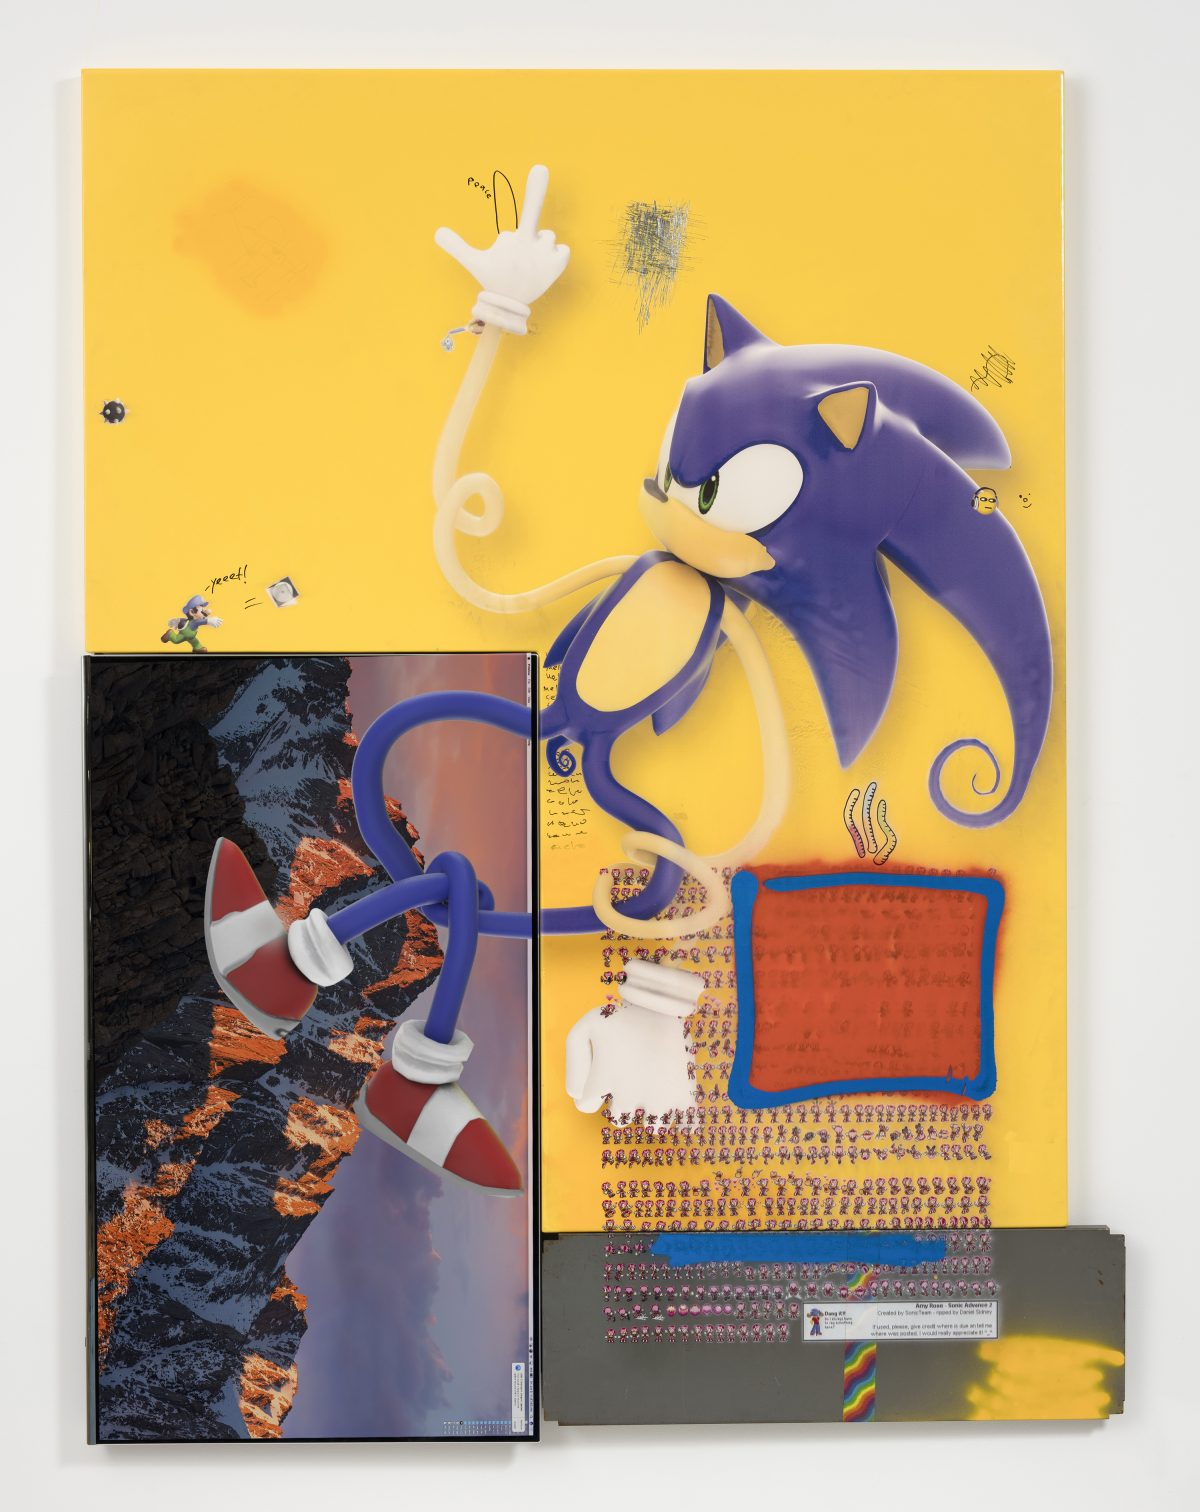 Yung Jake. <em>sonic (and amy rose and spike mario)</em>, 2017. UV print, spray paint, stickers, tape and ink on powder coated steel, found metal and monitor, 84 x 63 3/4 inches